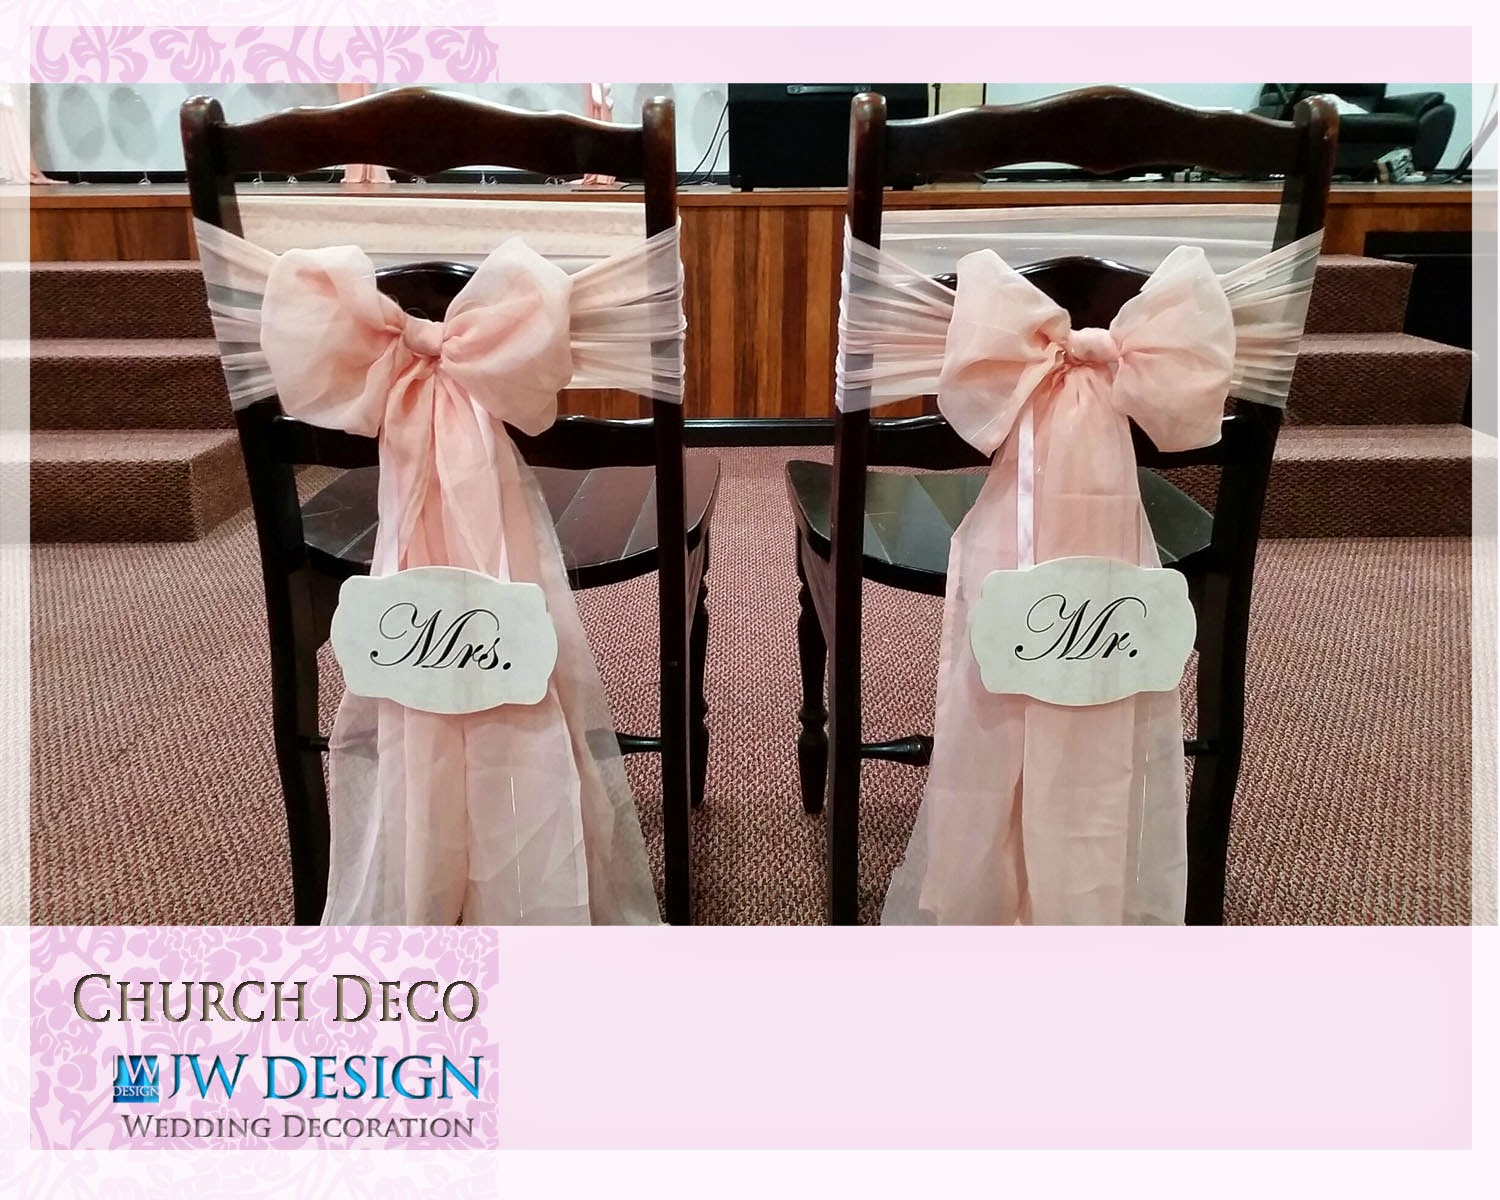 Church decorations for january - Posted By Jw Design Wedding Decoration At 3 42 Pm 3 Comments